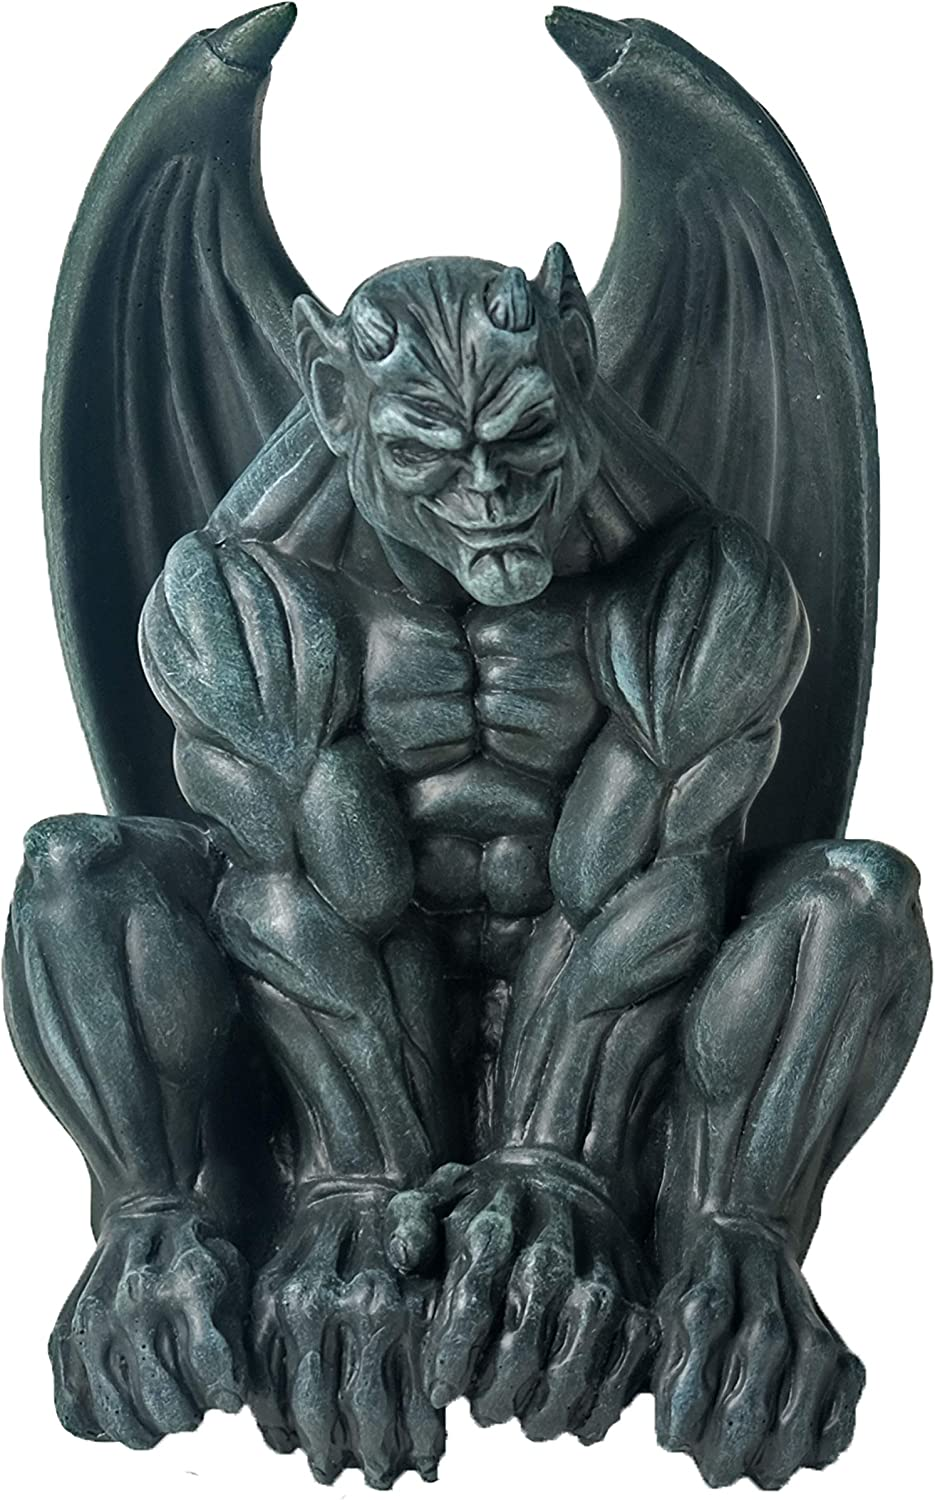 "BELLA HAUS DESIGN Gothic Gargoyle Statue 4"" x 8"" - Polyresin Indoor or Outdoor Décor Detailed Gargoyle Sculpture Statue – Medieval Gargoyle for Mantel Office Bedroom Garden Decoration"